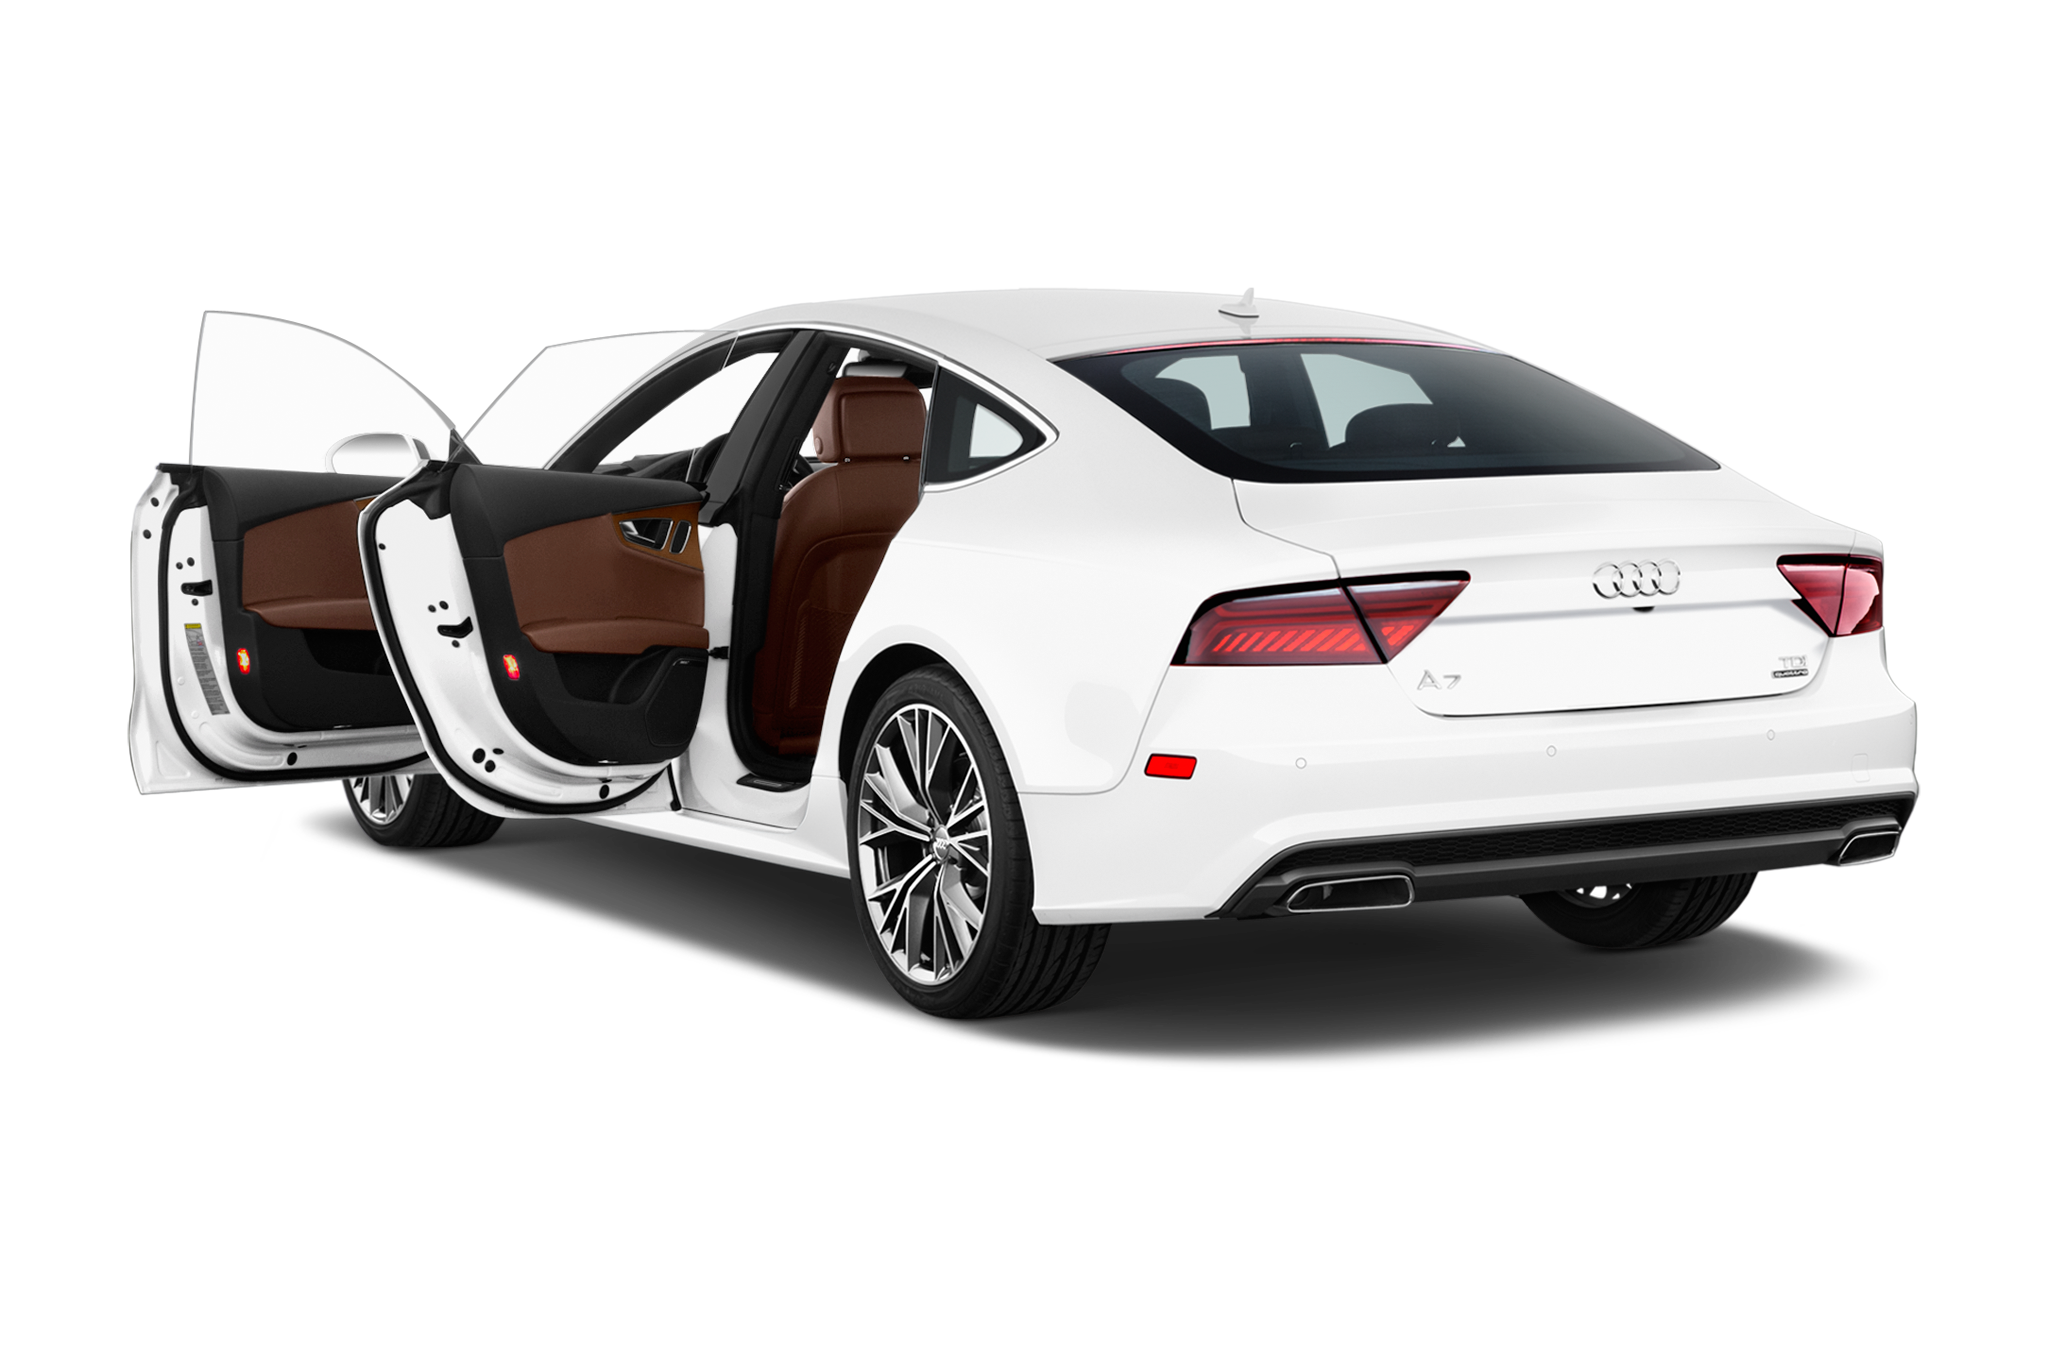 2017 audi a7 3 0t competition quattro first drive review automobile magazine. Black Bedroom Furniture Sets. Home Design Ideas